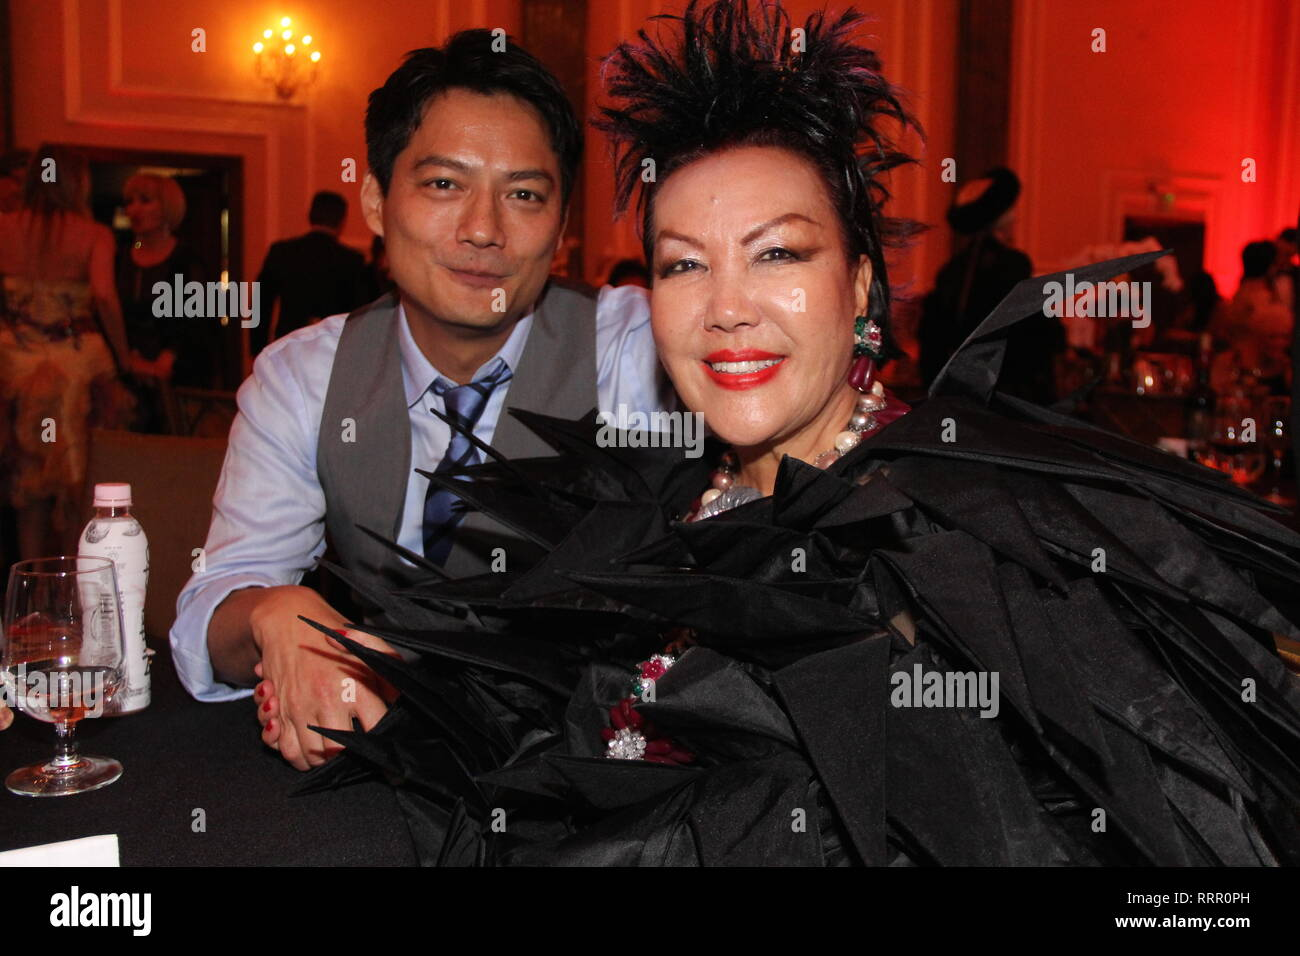 archie kao high resolution stock photography and images alamy https www alamy com hollywood california usa 24th feb 2019 i16034chwhollywood china night gala and awards ceremony presented by american chinese ceo society accs taglyan complex hollywood california usa 02242019 archie kao and sue wong clinton hwallacephotomundo international photos inc credit clinton wallaceglobe photoszuma wirealamy live news image238377401 html